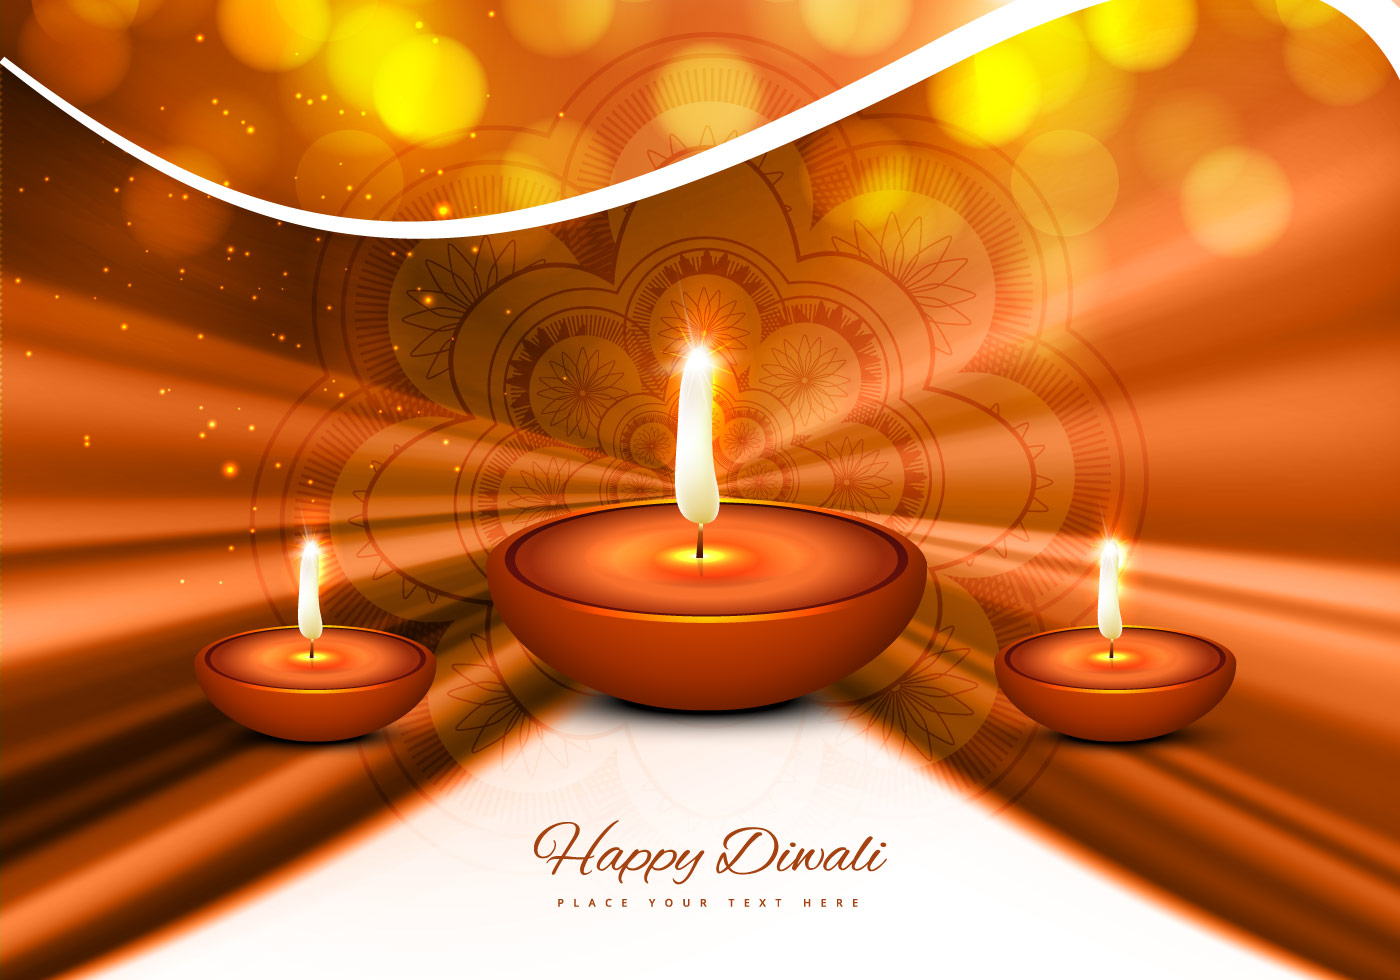 Stylish Greeting Card For Diwali Festival Download Free Vector Art